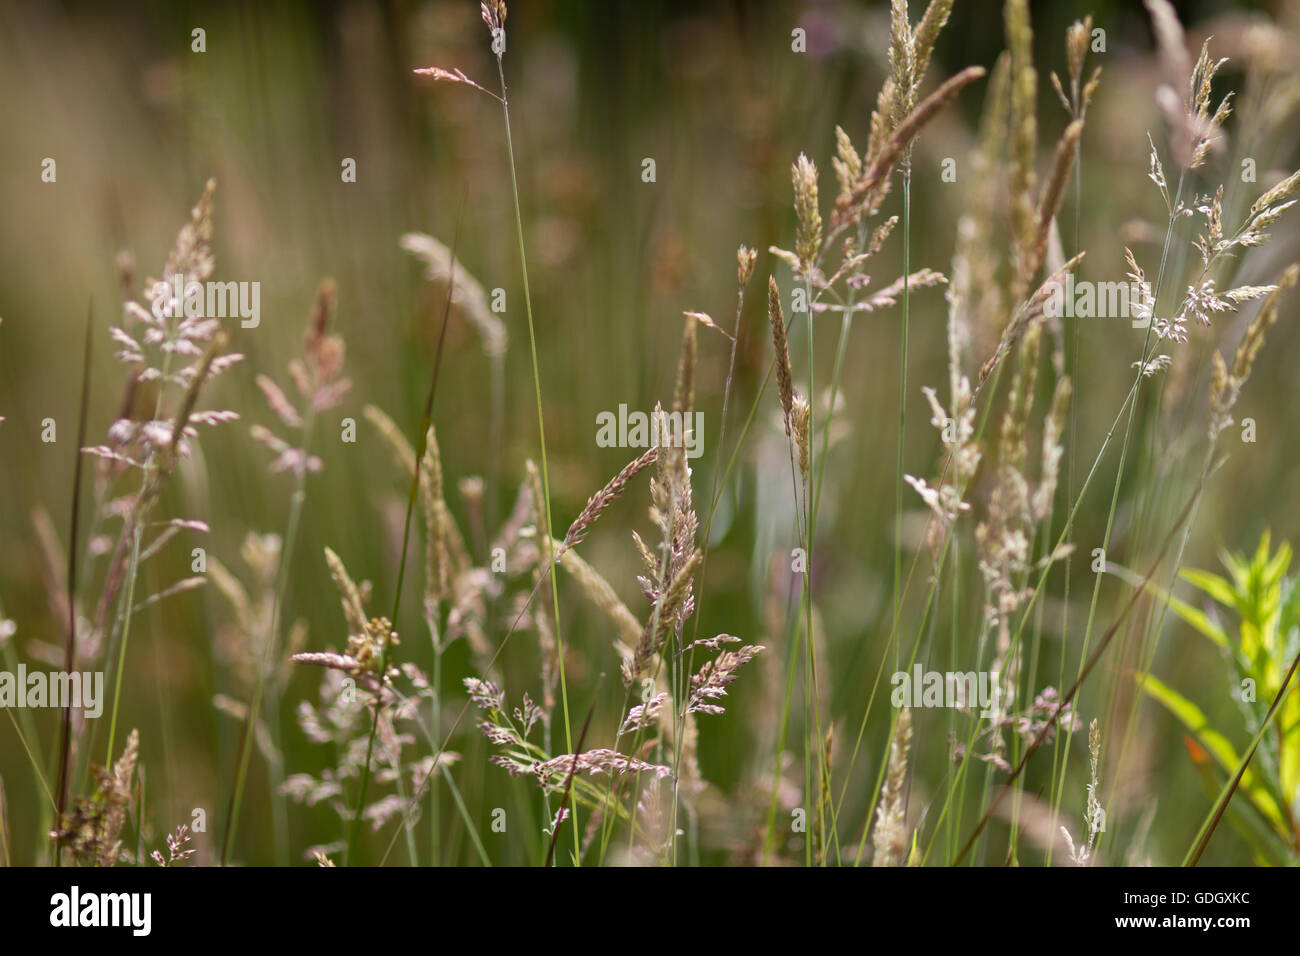 Grasses with seeds creating a natural background of a nature meadow with muted tones and colours. - Stock Image